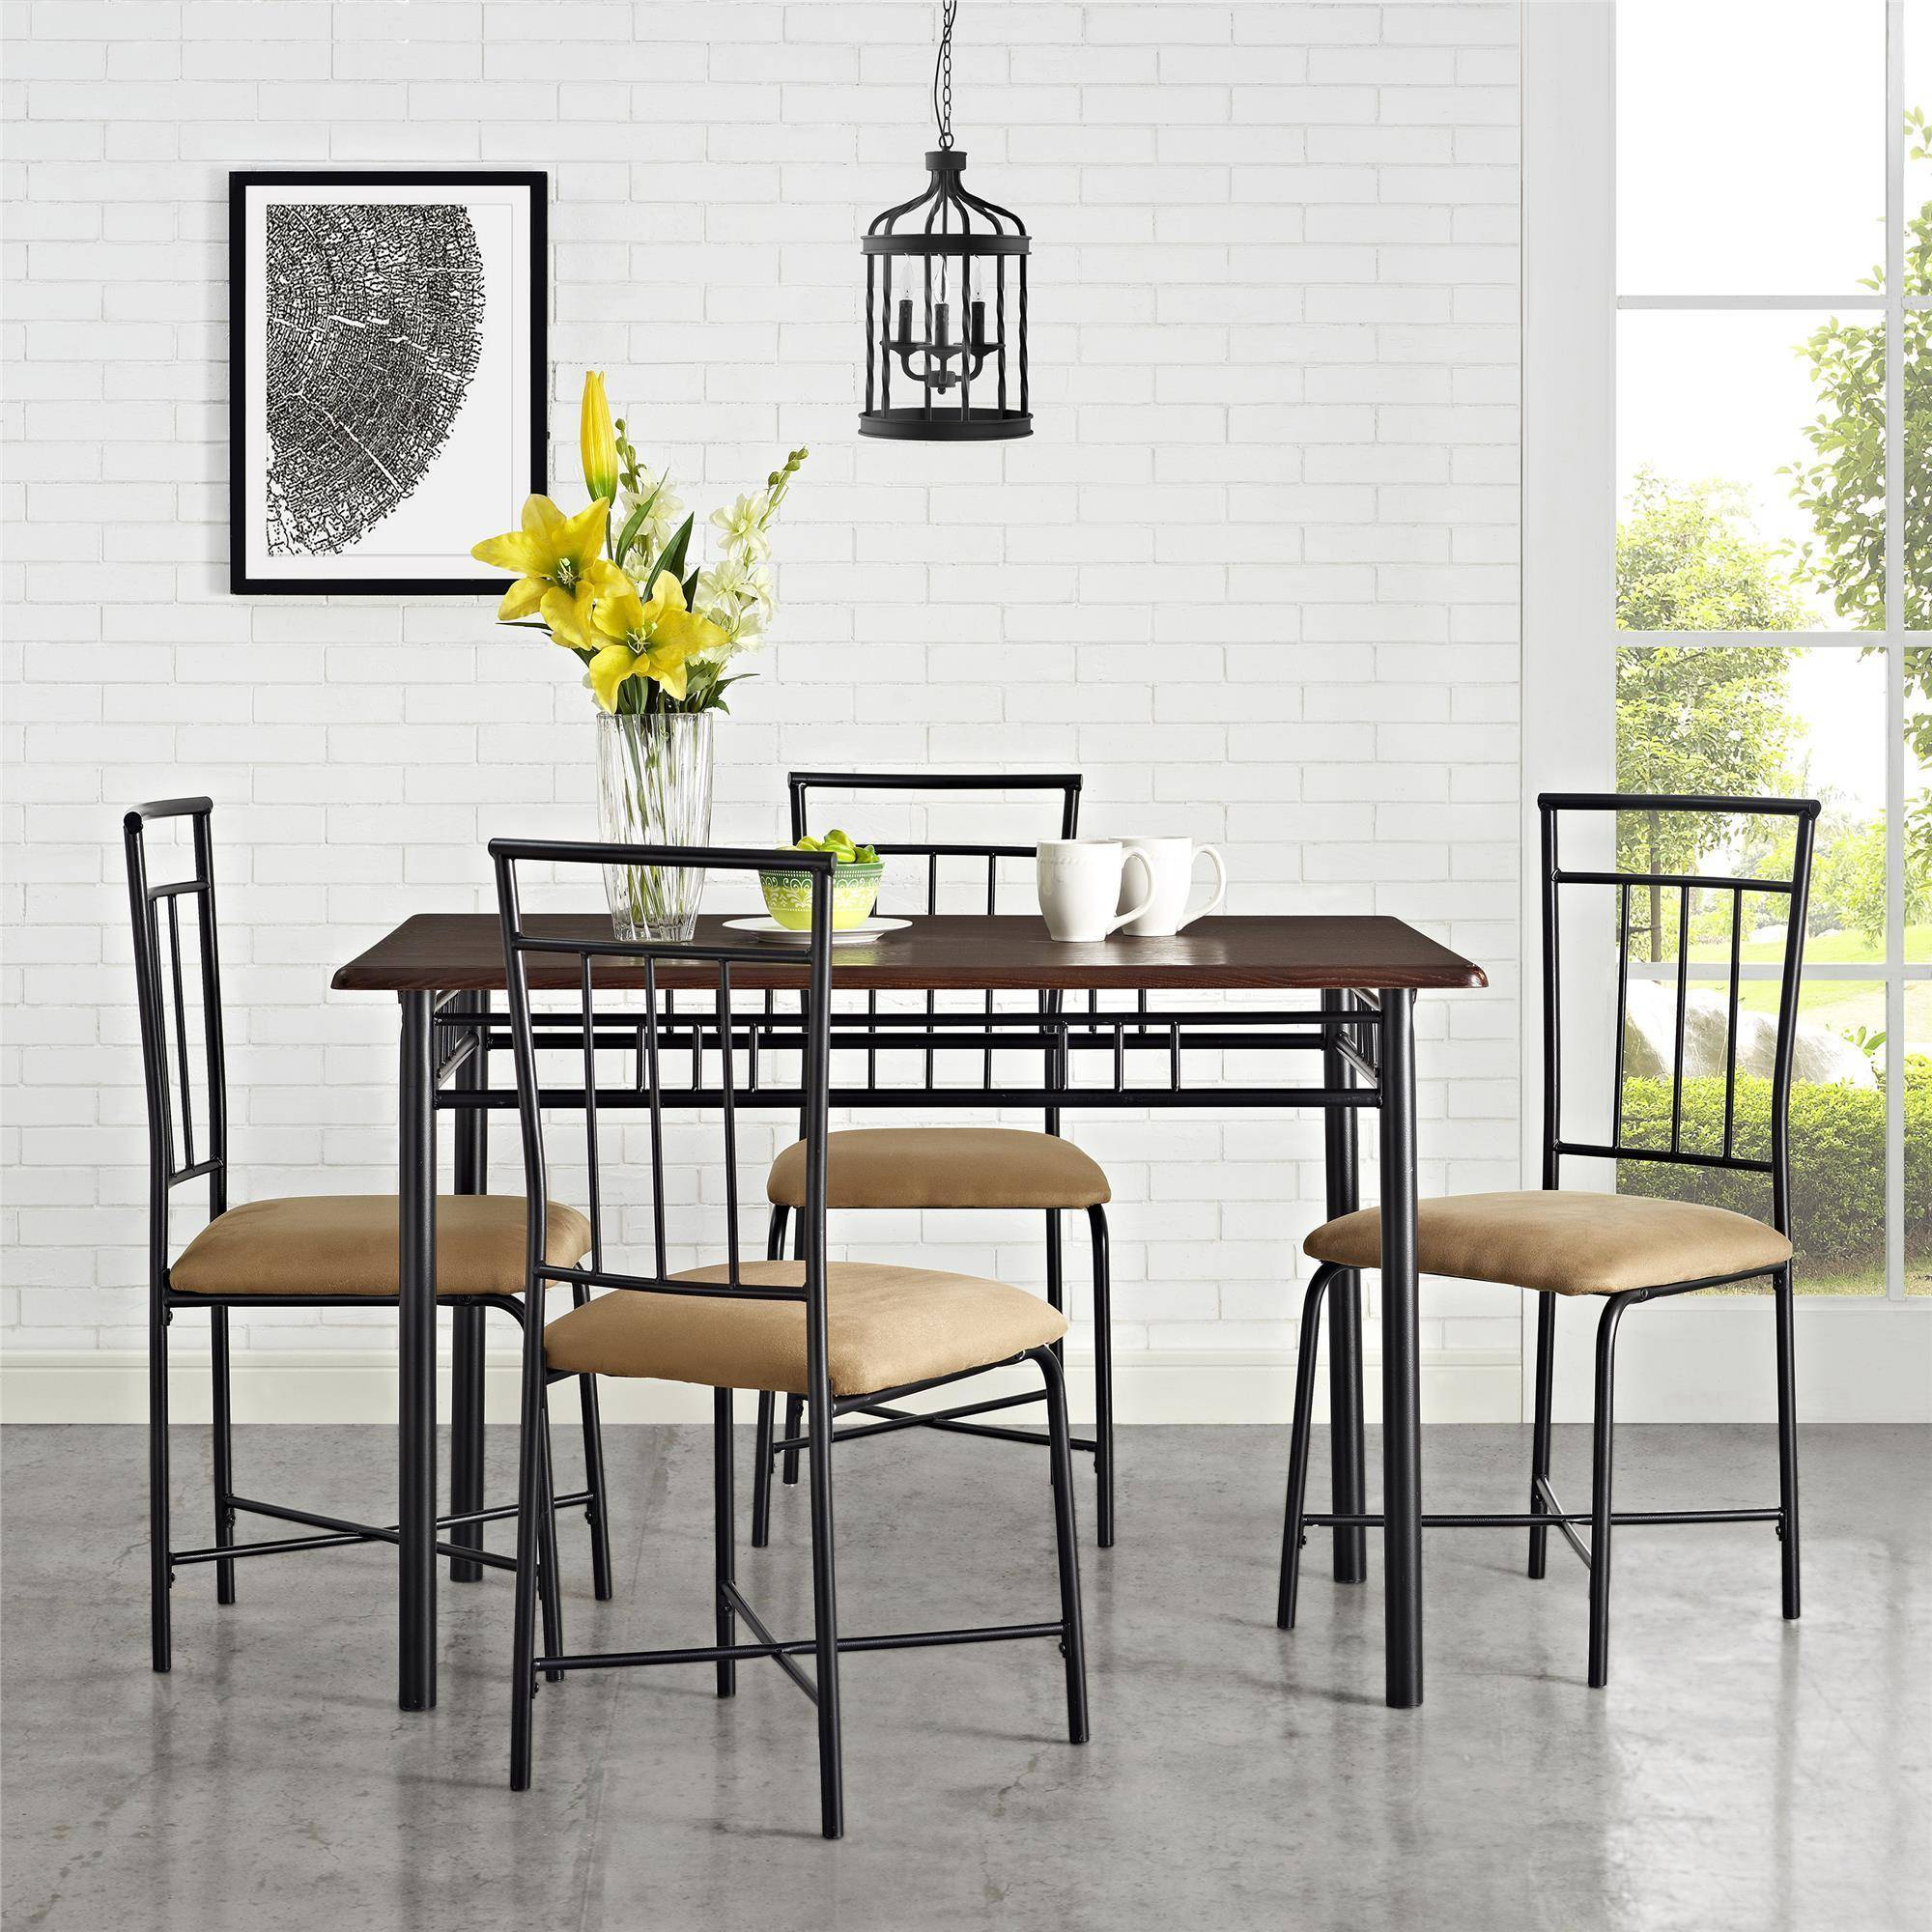 Mainstays 9 Piece Mission Counter Height Dining Set, Multiple Colors, Set  of 9